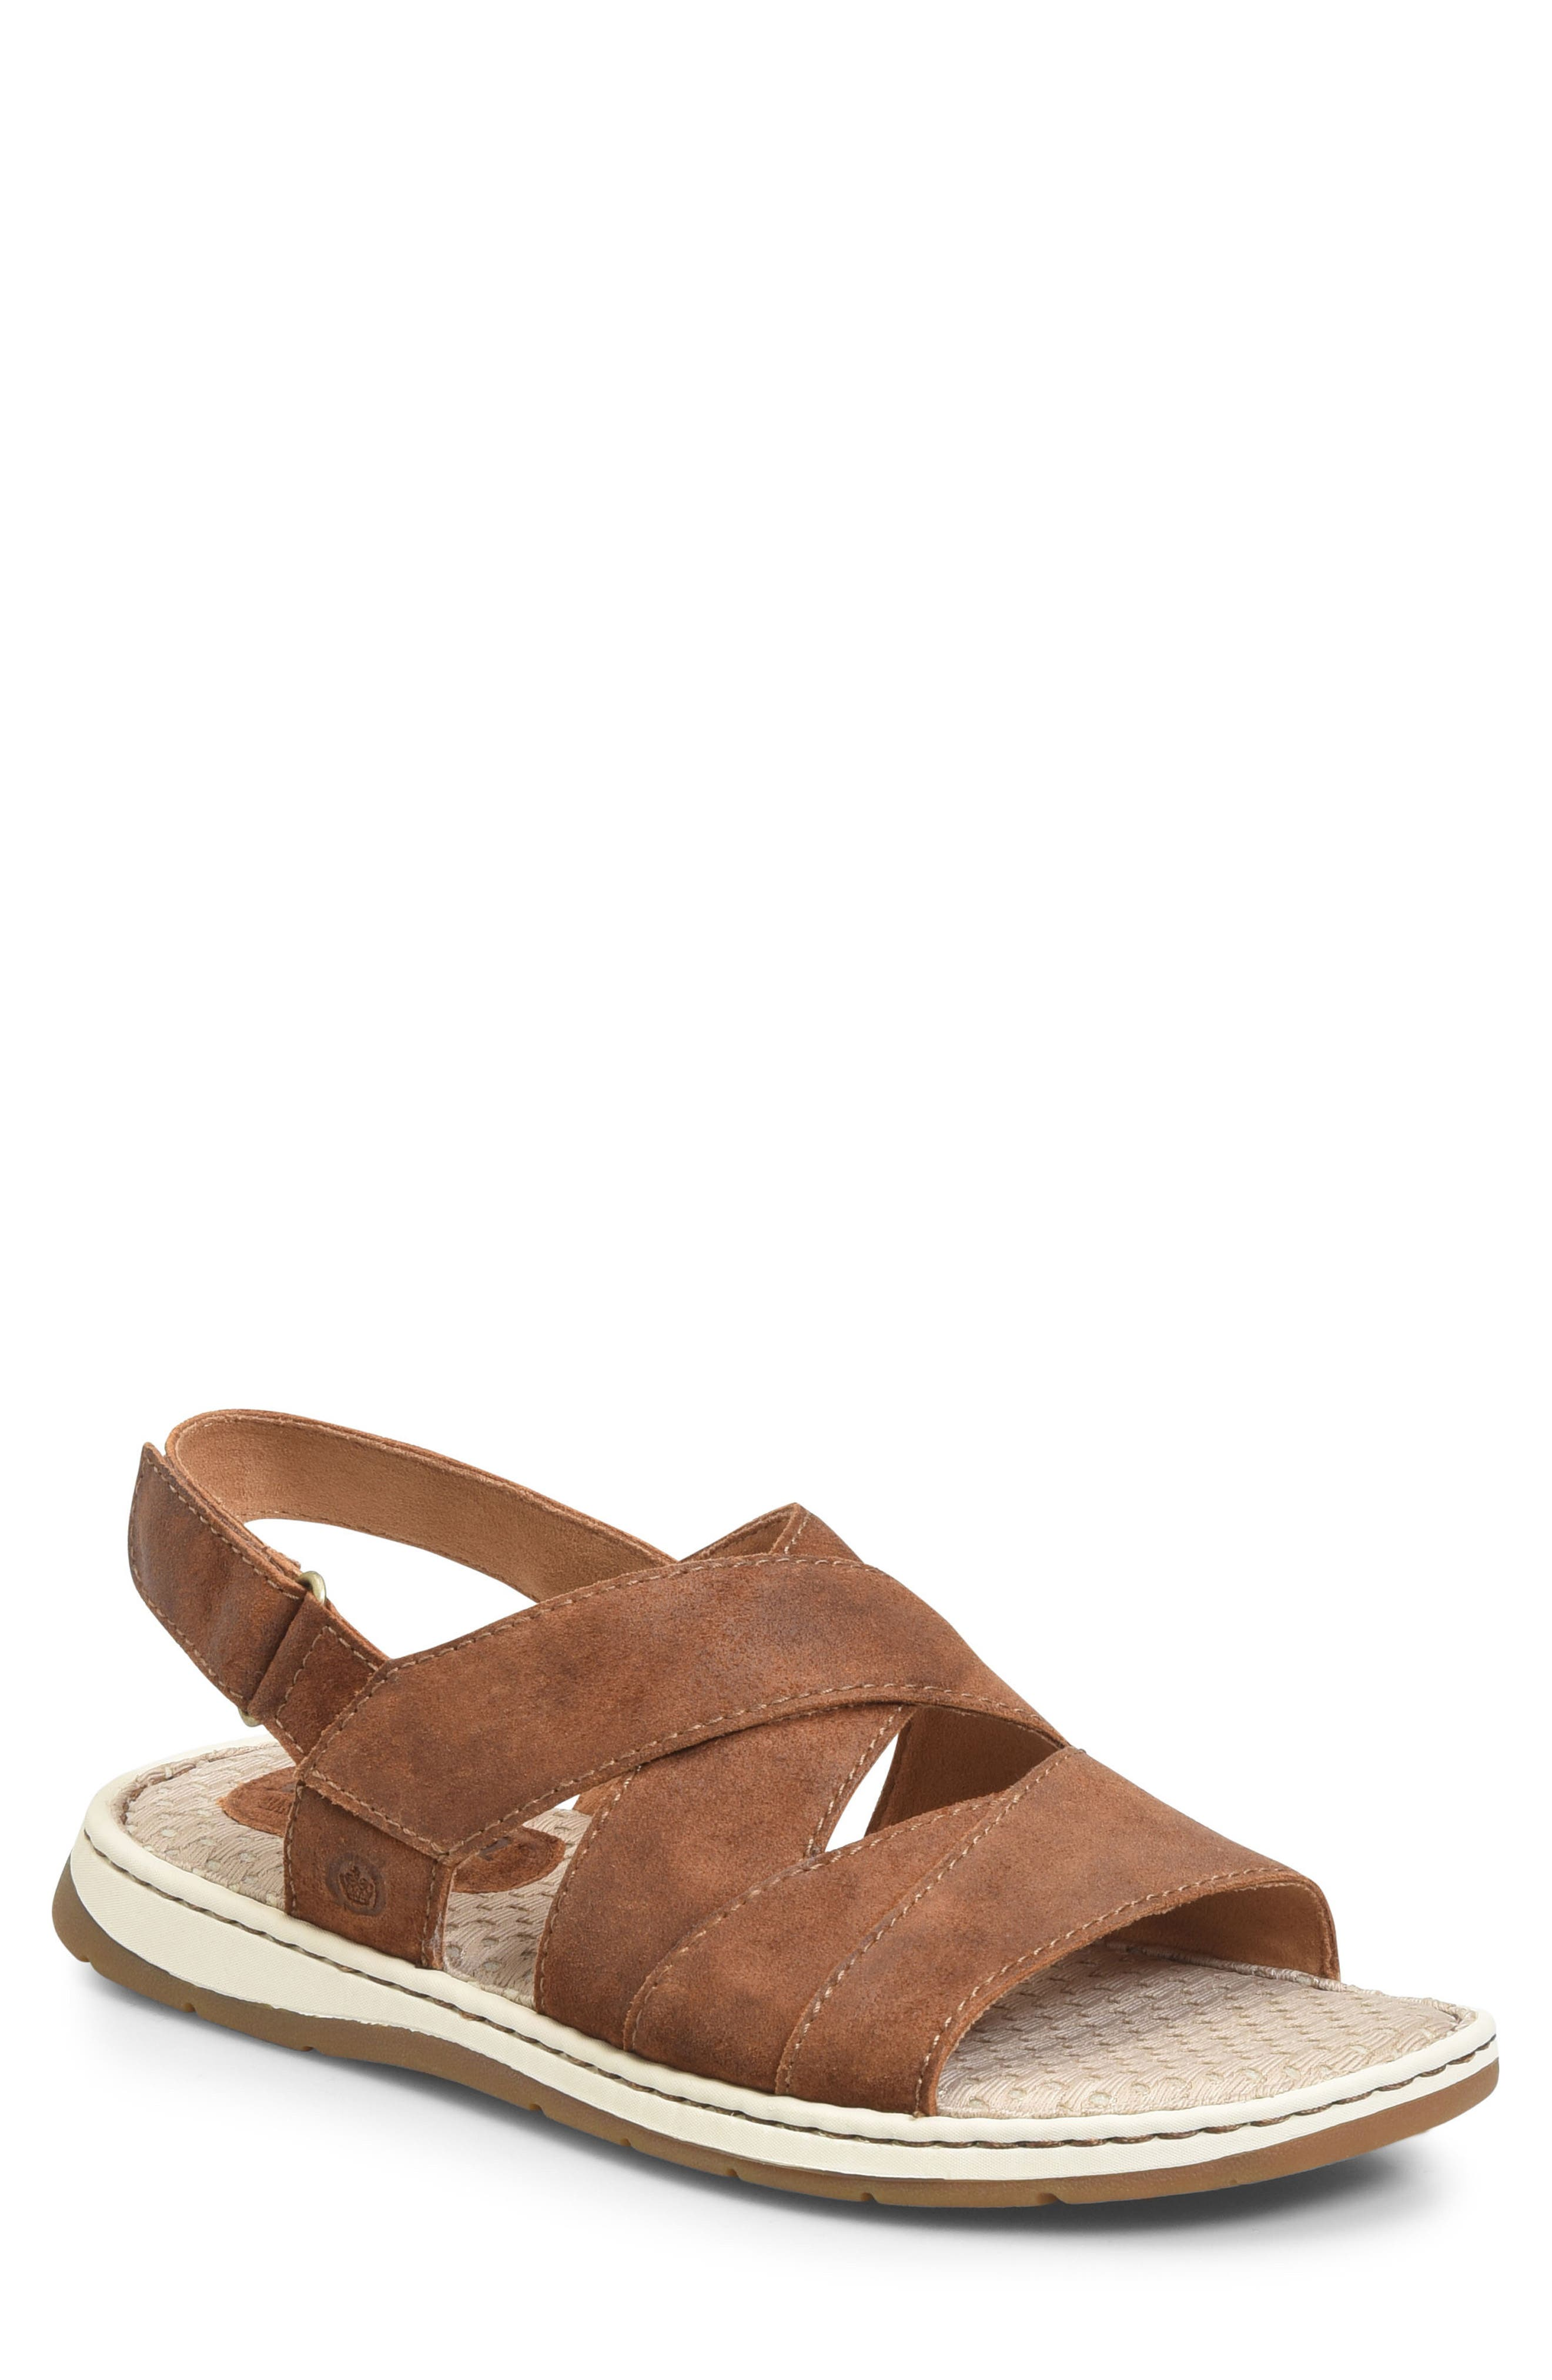 Shell Cross Strap Sandal,                         Main,                         color, Rust Leather